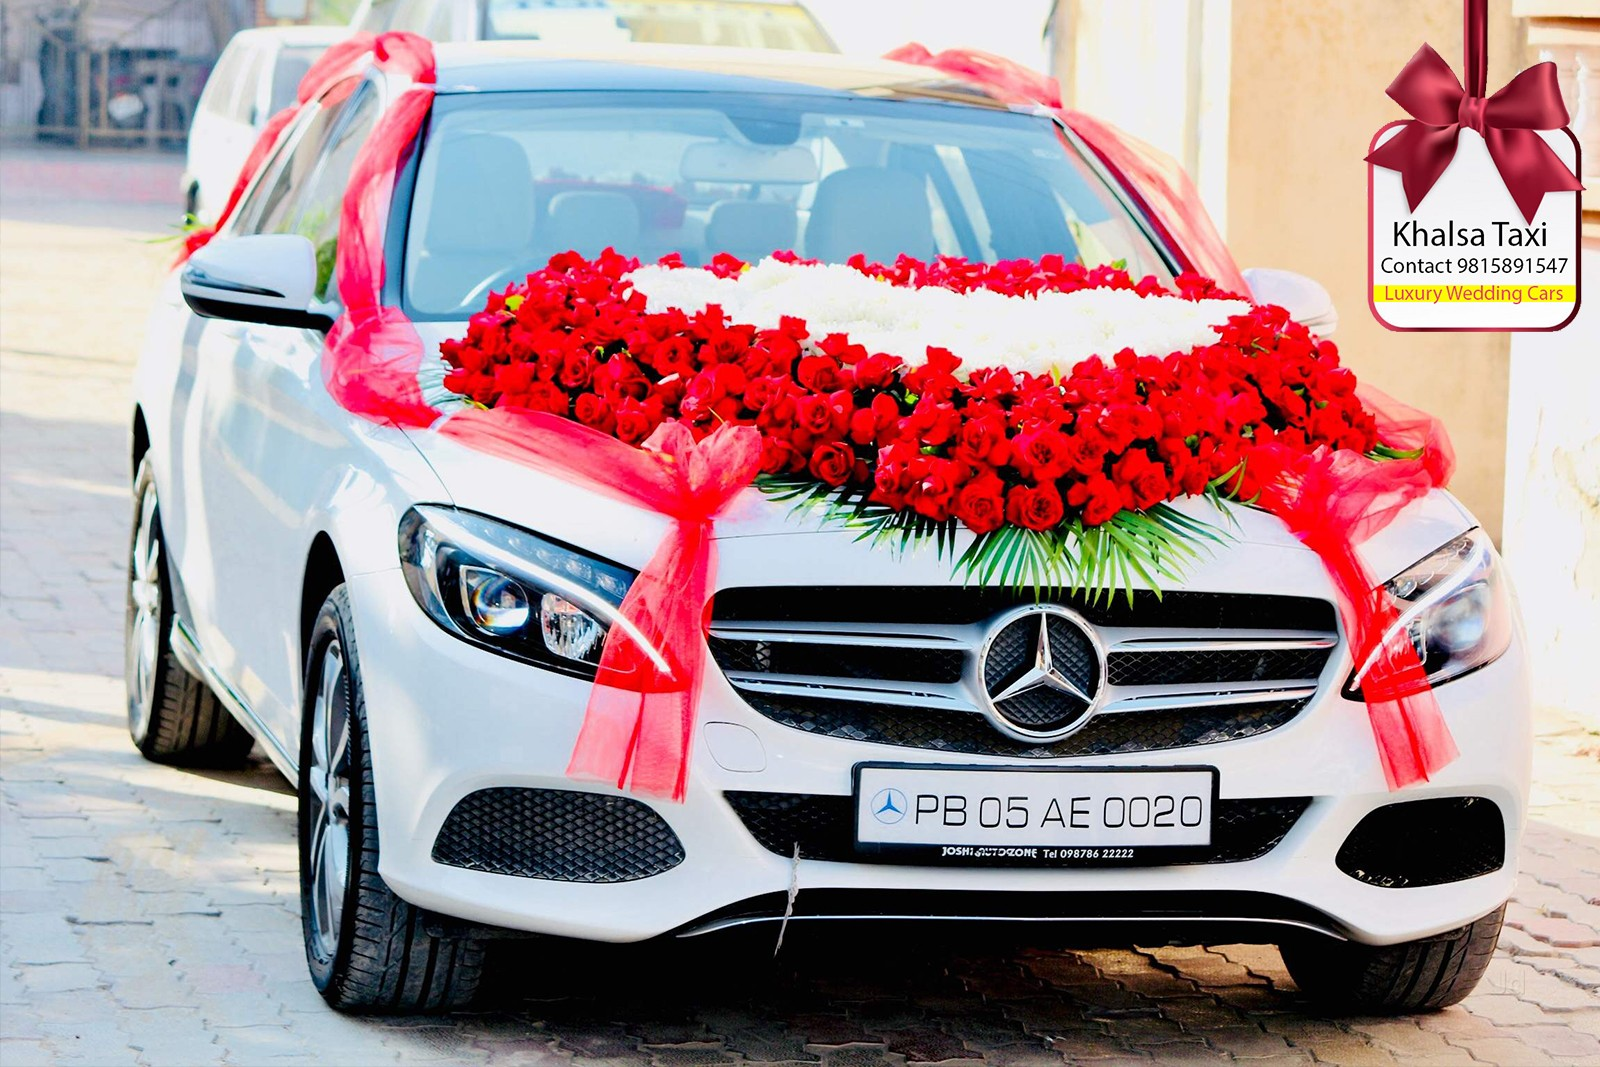 Wedding Car Mercedes On Rent, Luxury Wedding Mercedes Car On Rent